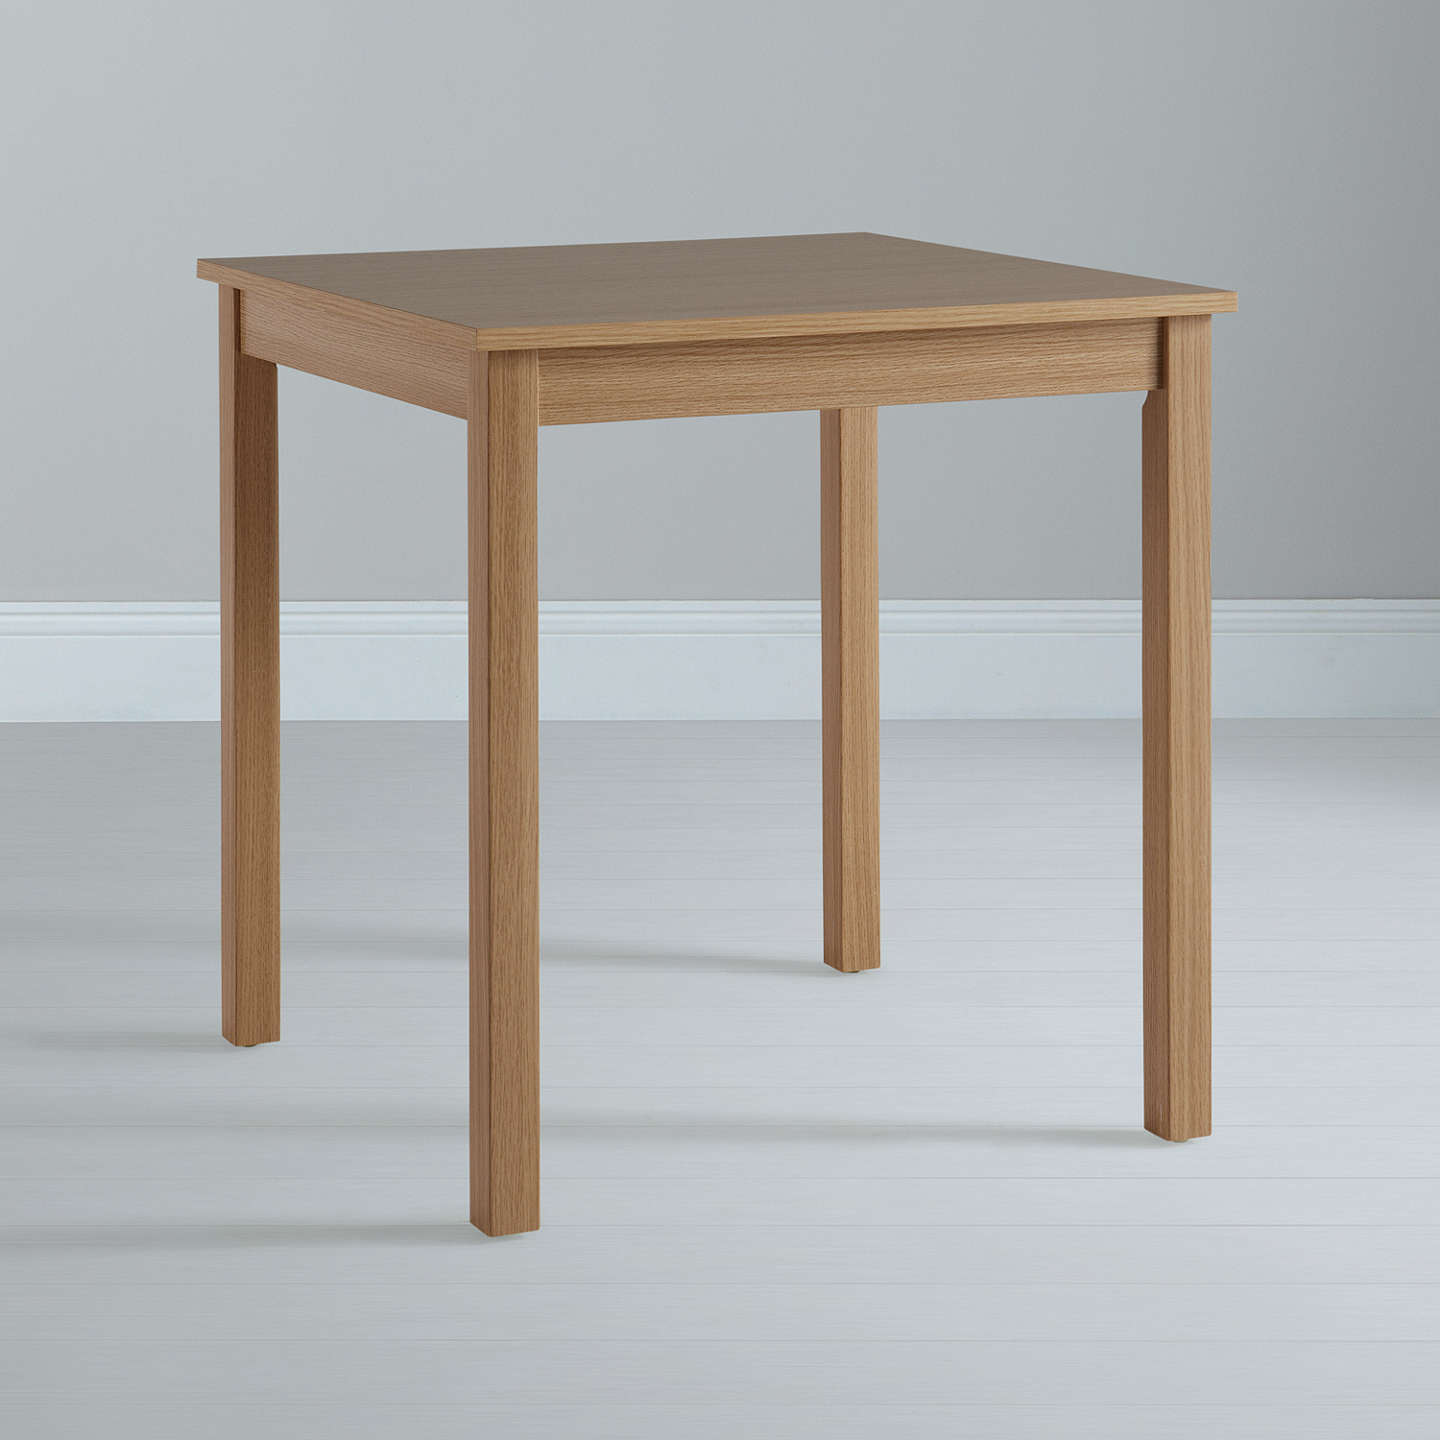 John lewis the basics daisy 2 seater dining table at john for Basic dining table